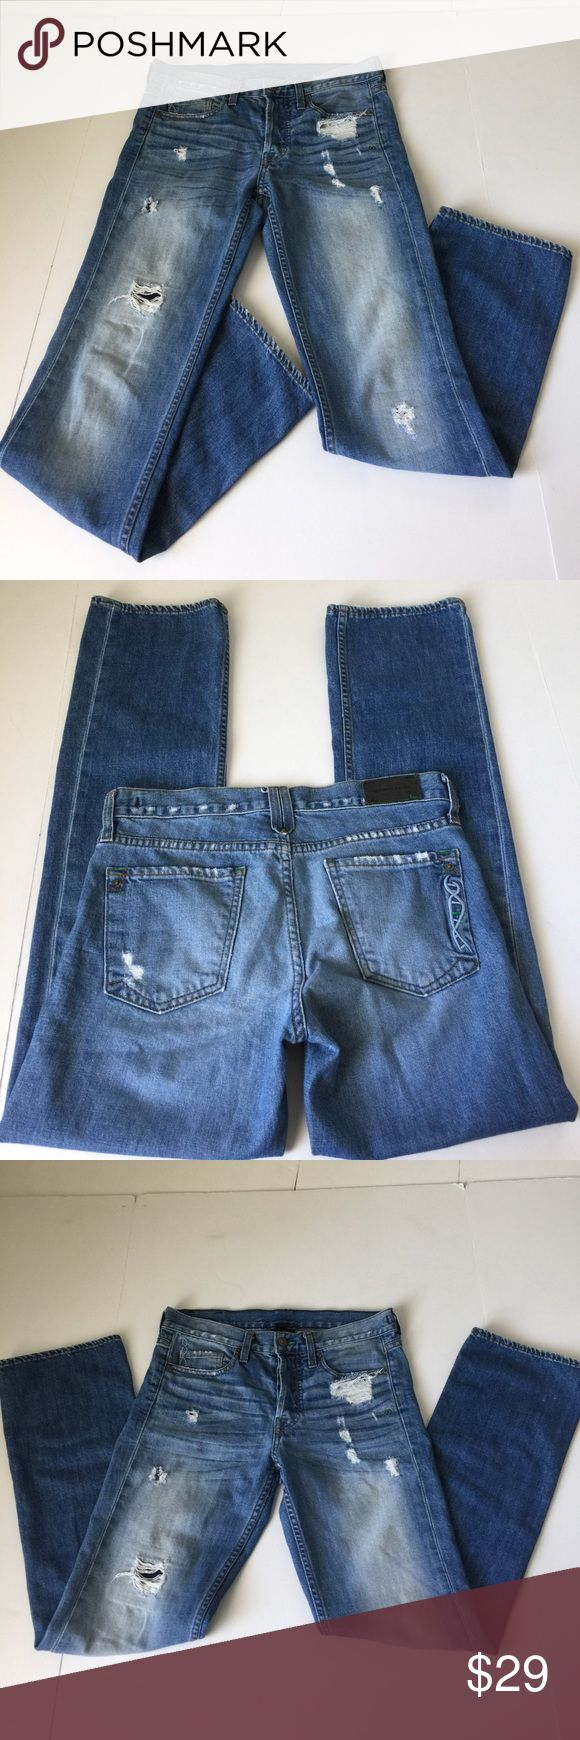 Genetic Denim The Ryder Distressed Boy Jeans, 25 Genetic Denim The Ryder Distressed Boy Jeans in size 25. Color is Ol' Vintage, a mid wash blue with factory fading, whispering and distress. Flat lay measure of the waist is approximately 15.5, rise is approximately 9.25, inseam is approximately 30 and leg opening is approximately 7.75. Made from 98% cotton and 2% elastin. Please look at all photos and ask if you have any questions. Genetic Denim Jeans Boyfriend